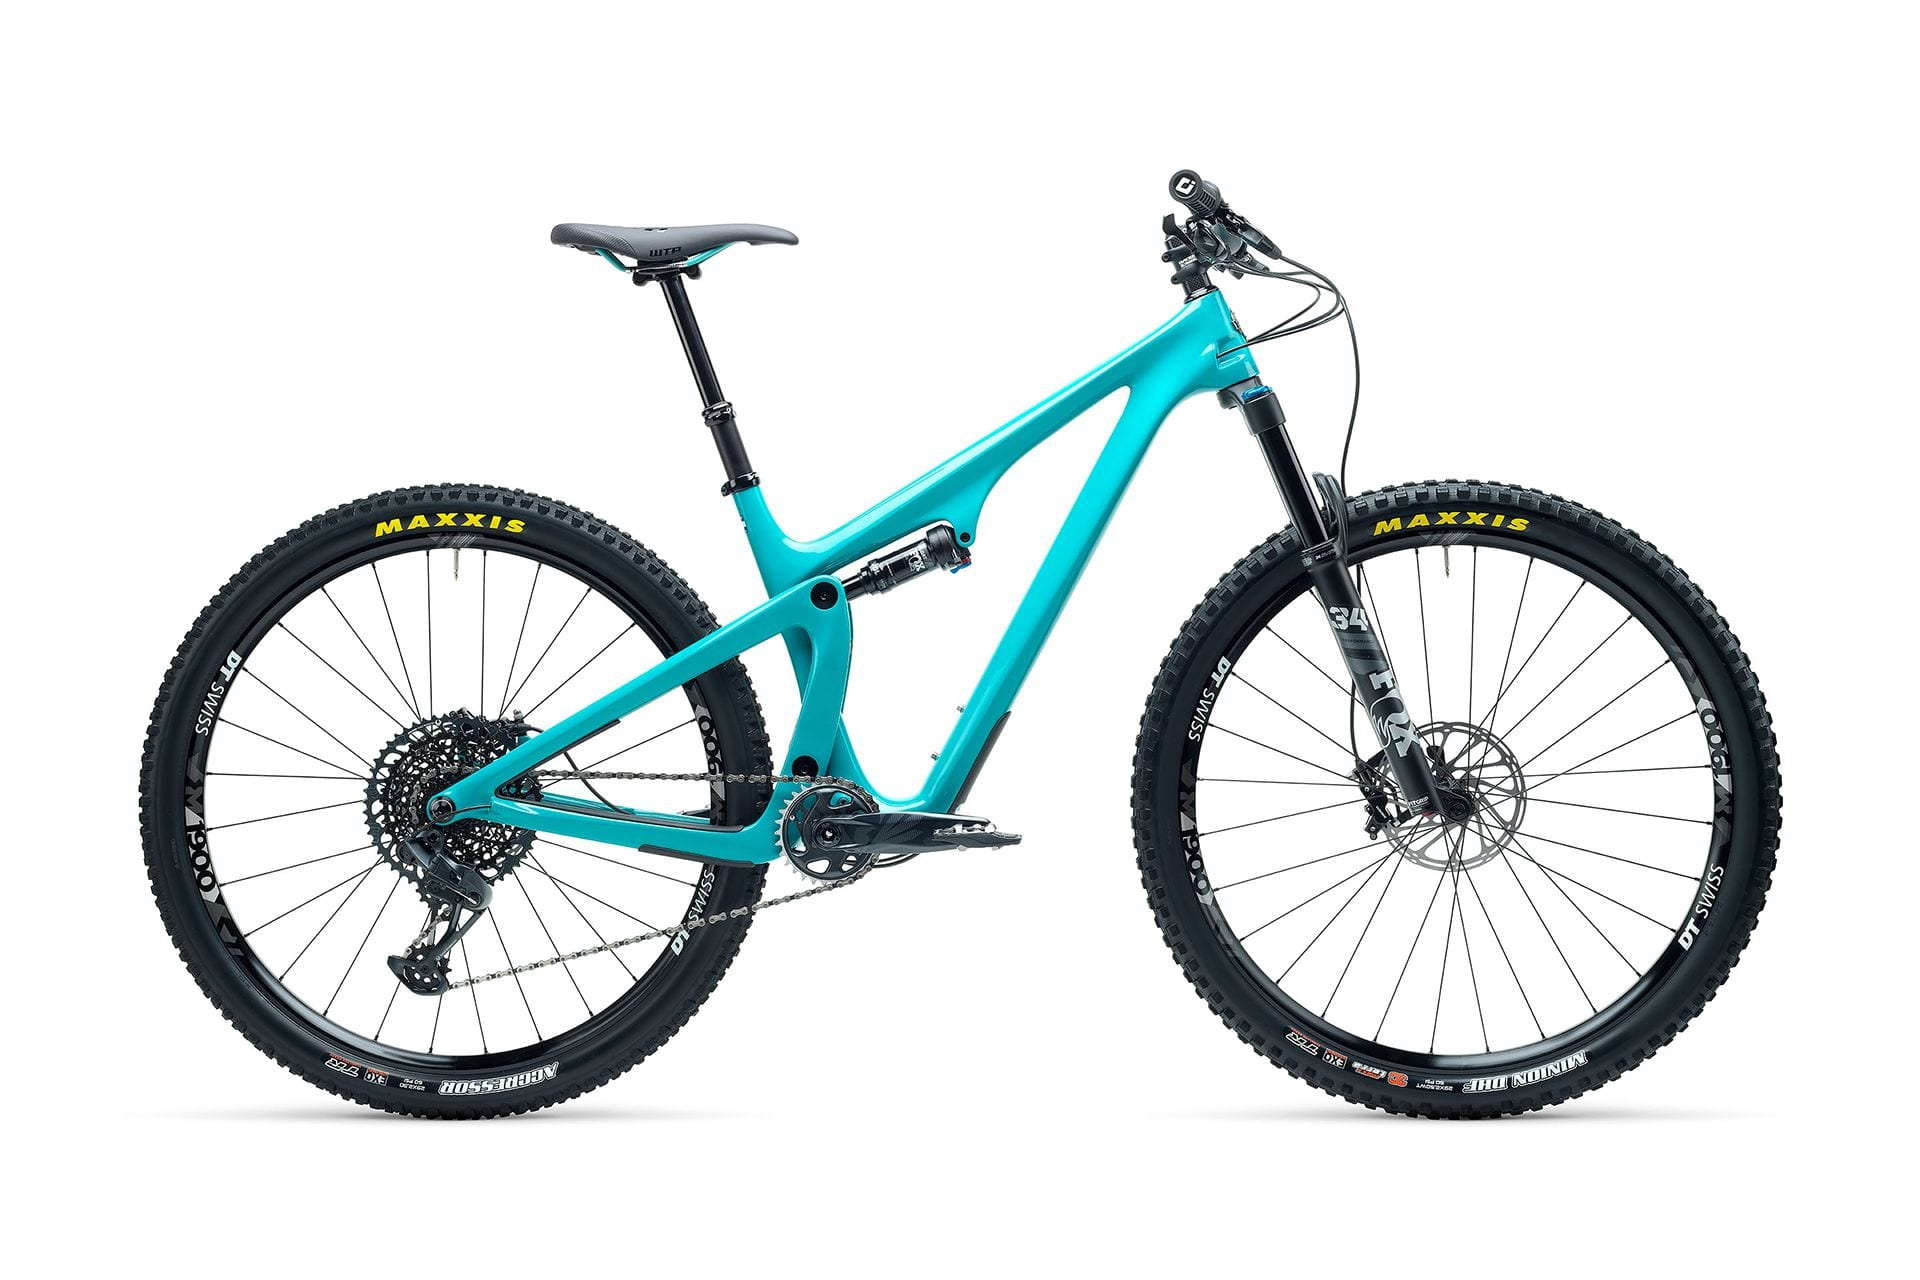 Yeti SB115 Trail bike rental in Whistler BC